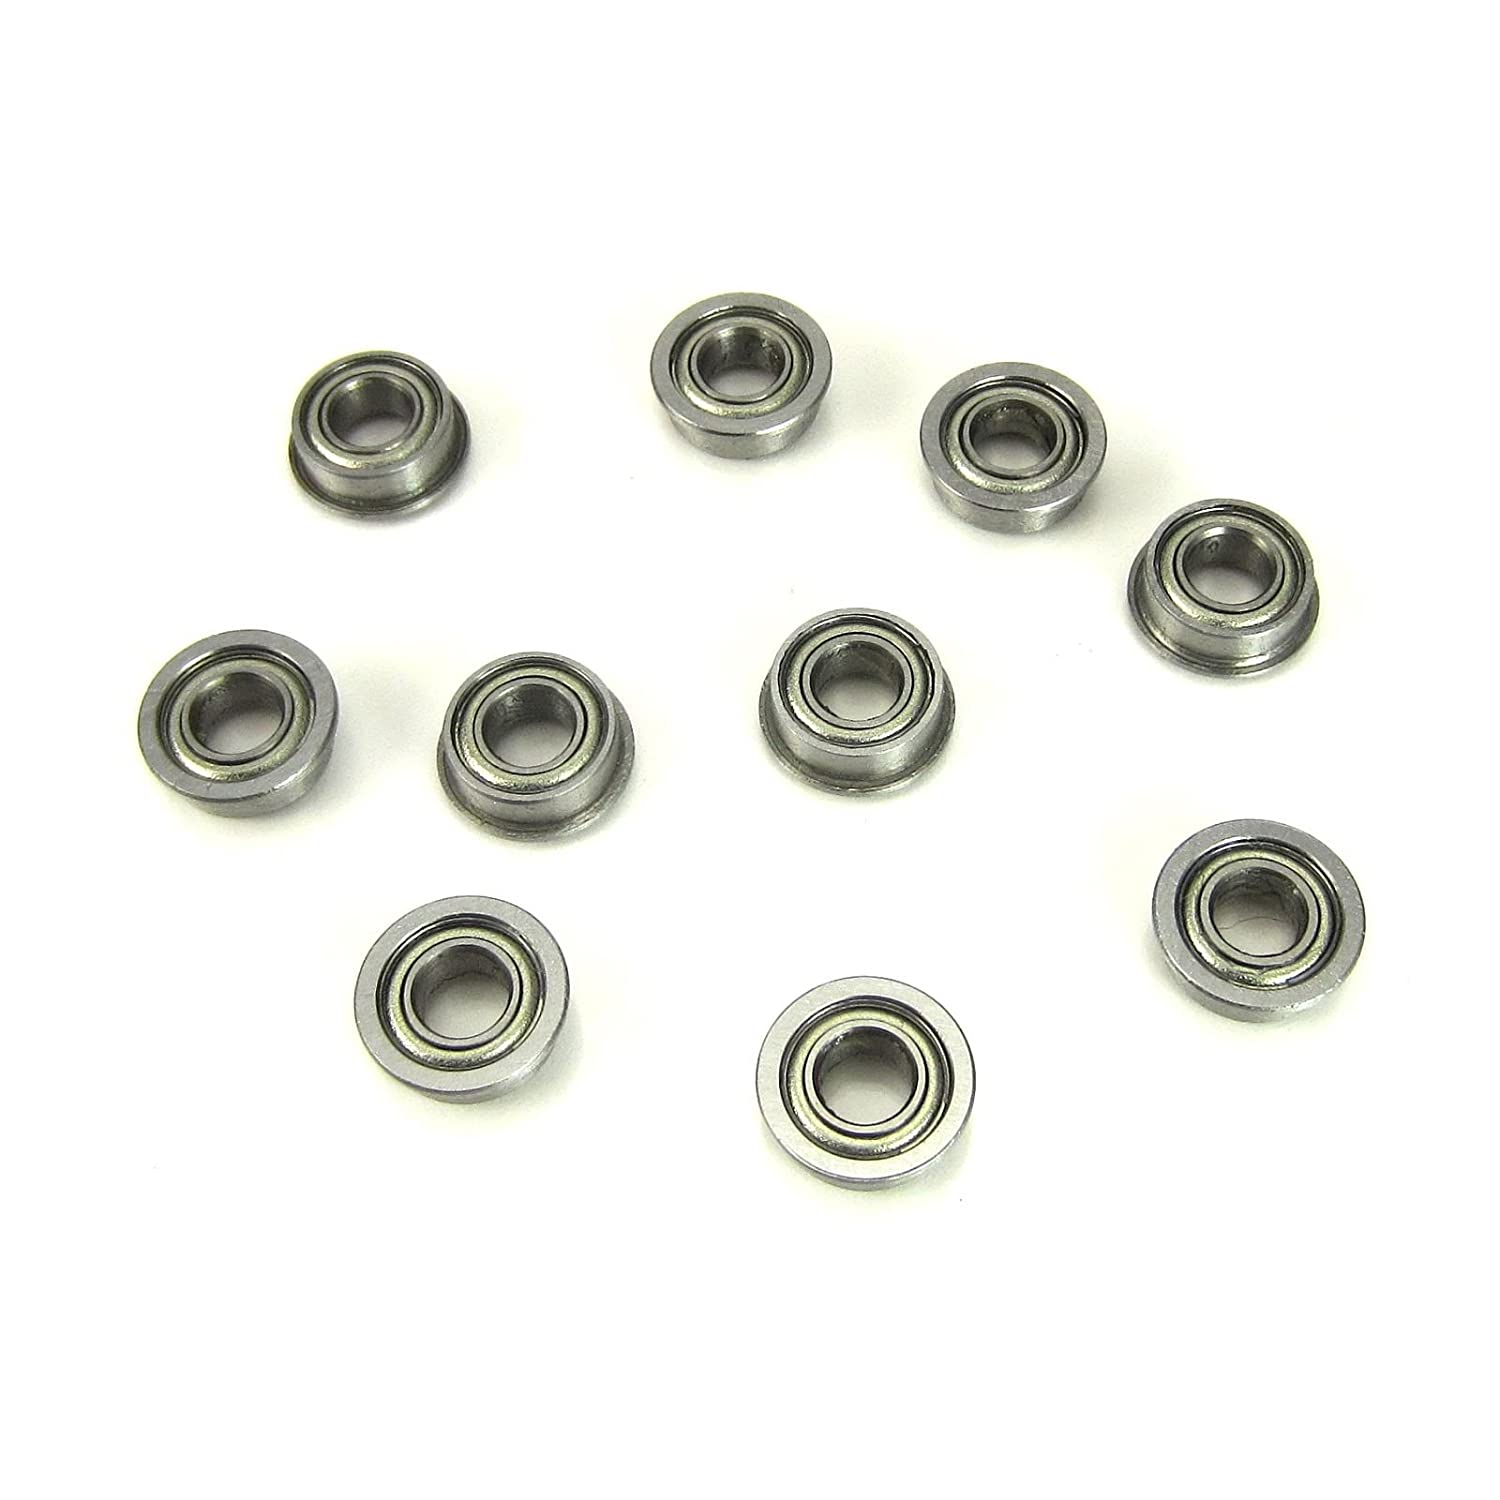 10pcs. 4x8x3mm Flanged Precision Ball Bearings Chrome Steel Metal Shields TRB RC